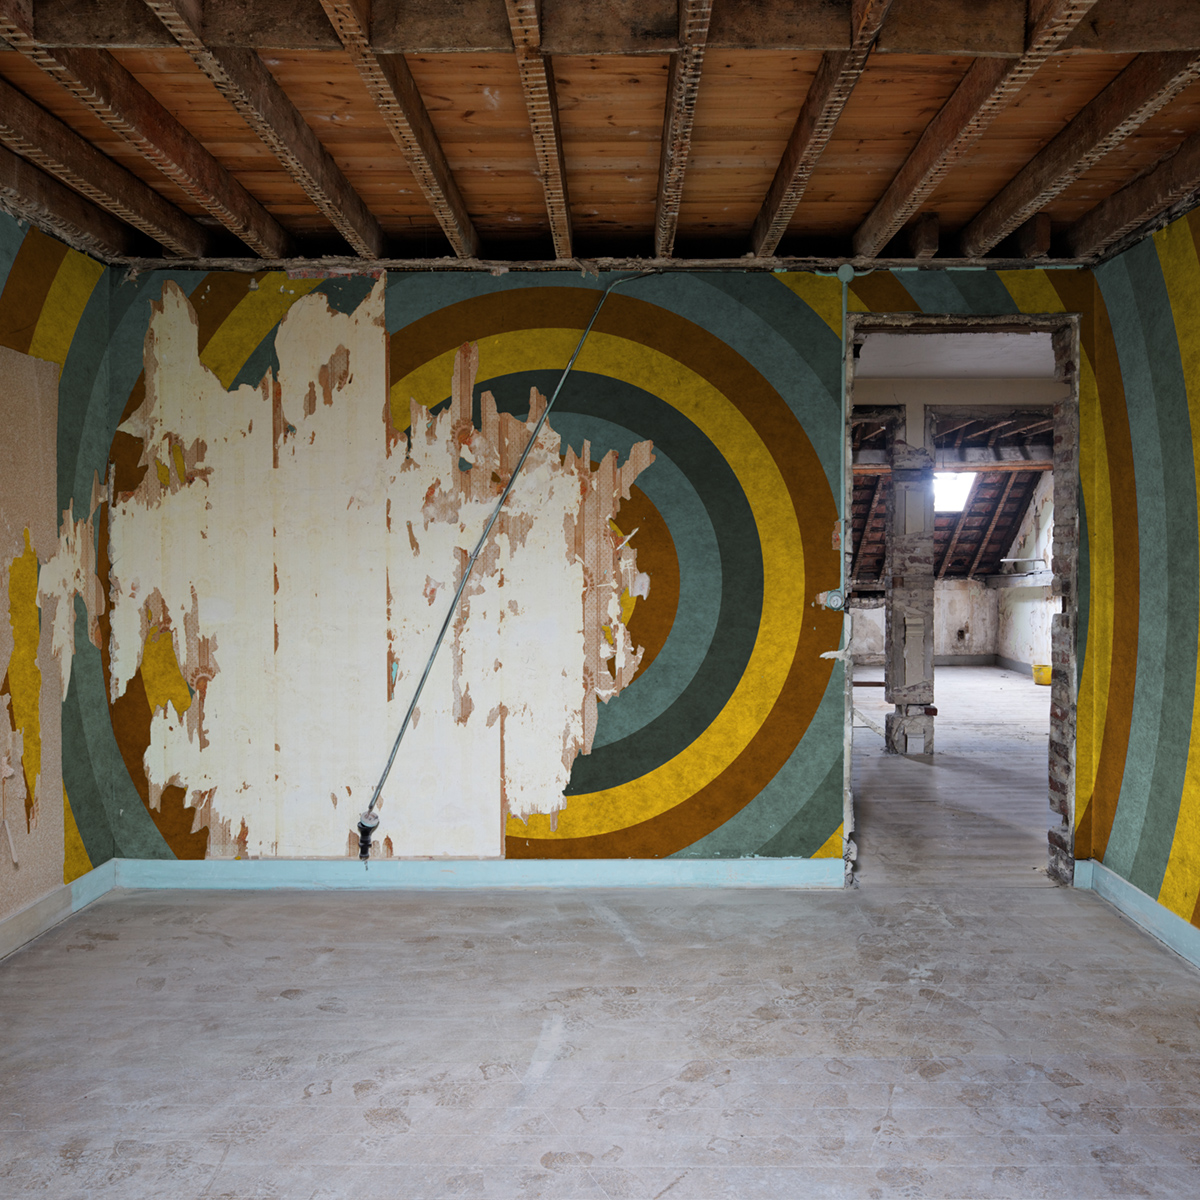 Attic wall drawing #544  ©Xavier Delory